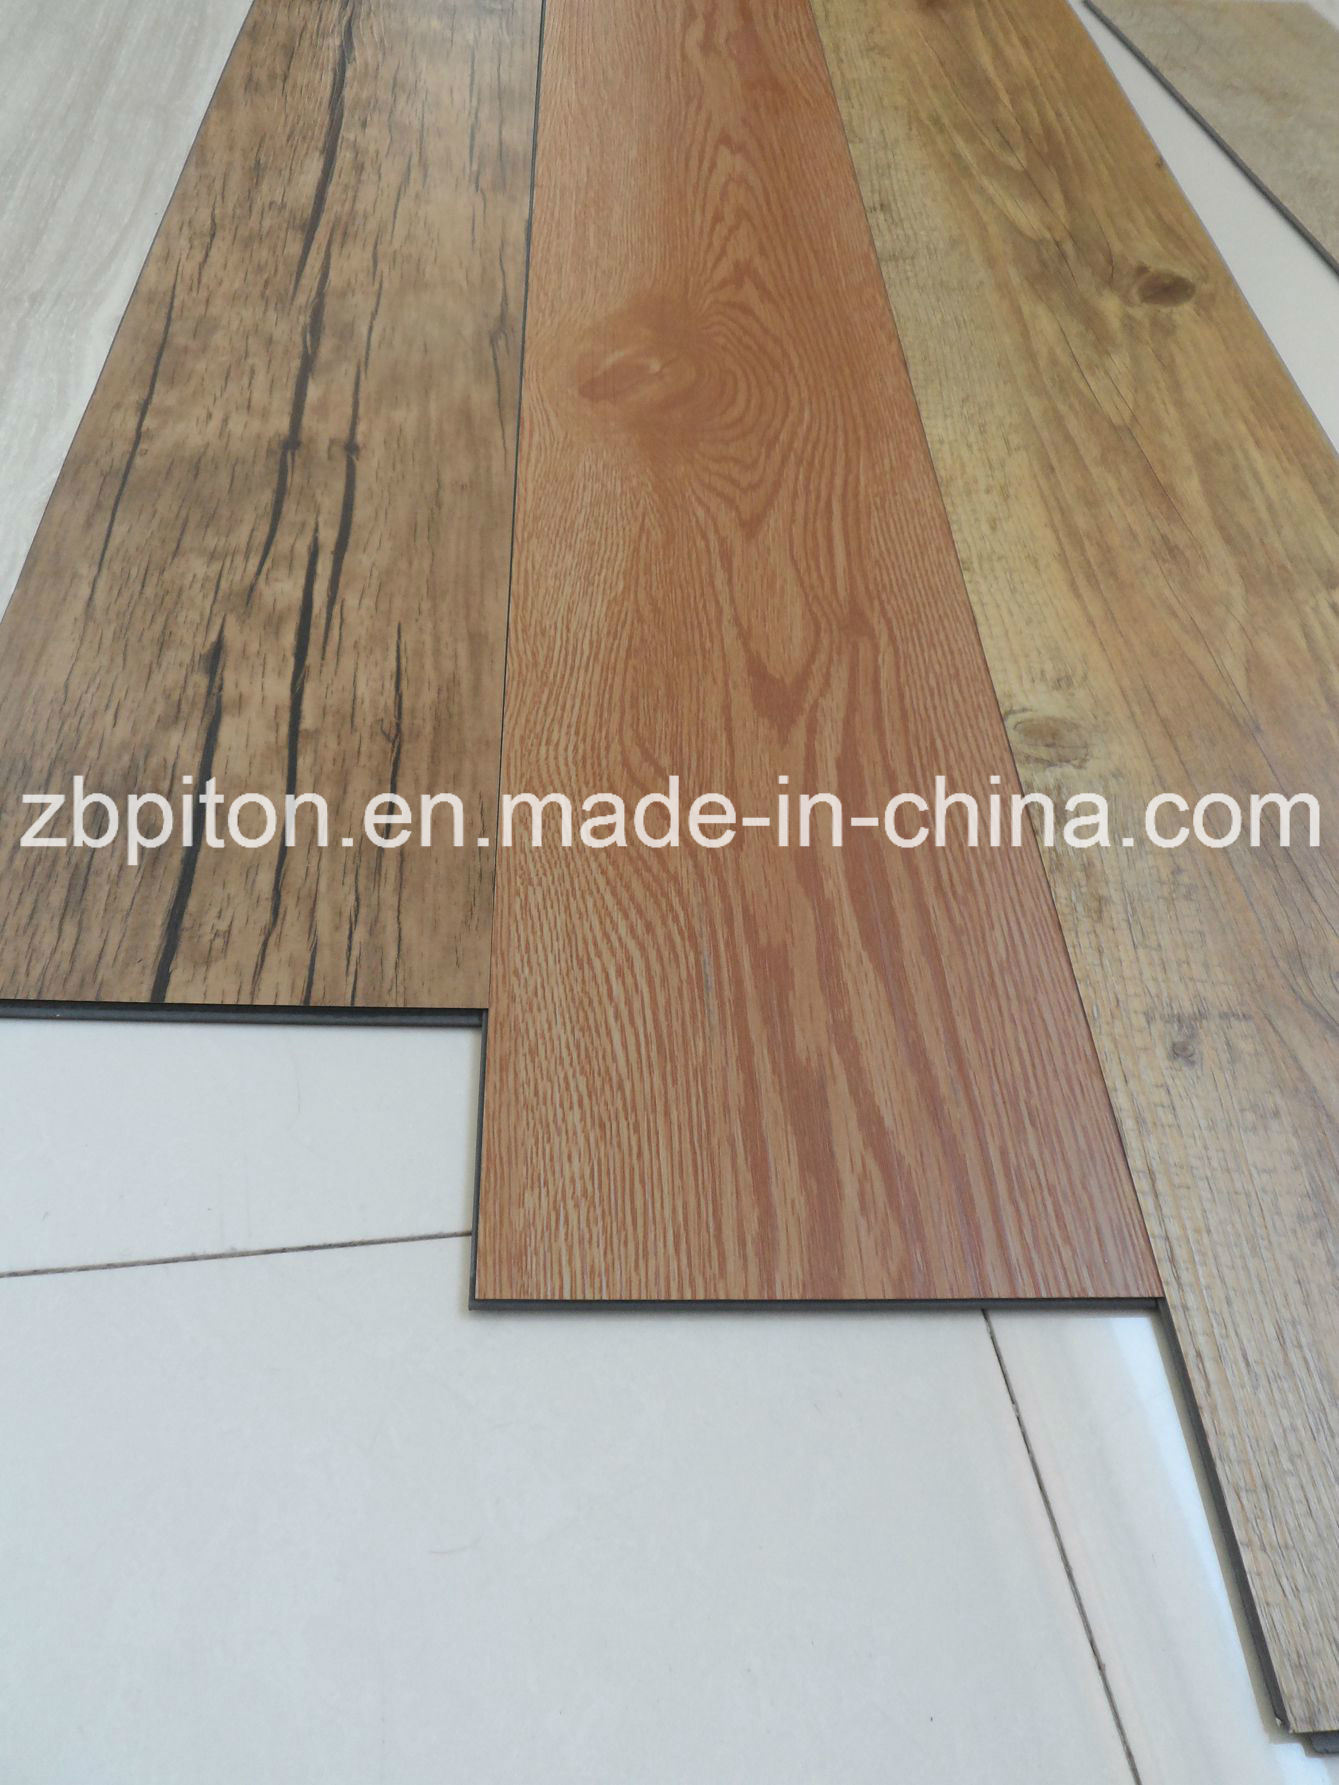 Pvc Vinyl Flooring : China unilin click pvc vinyl flooring photos pictures